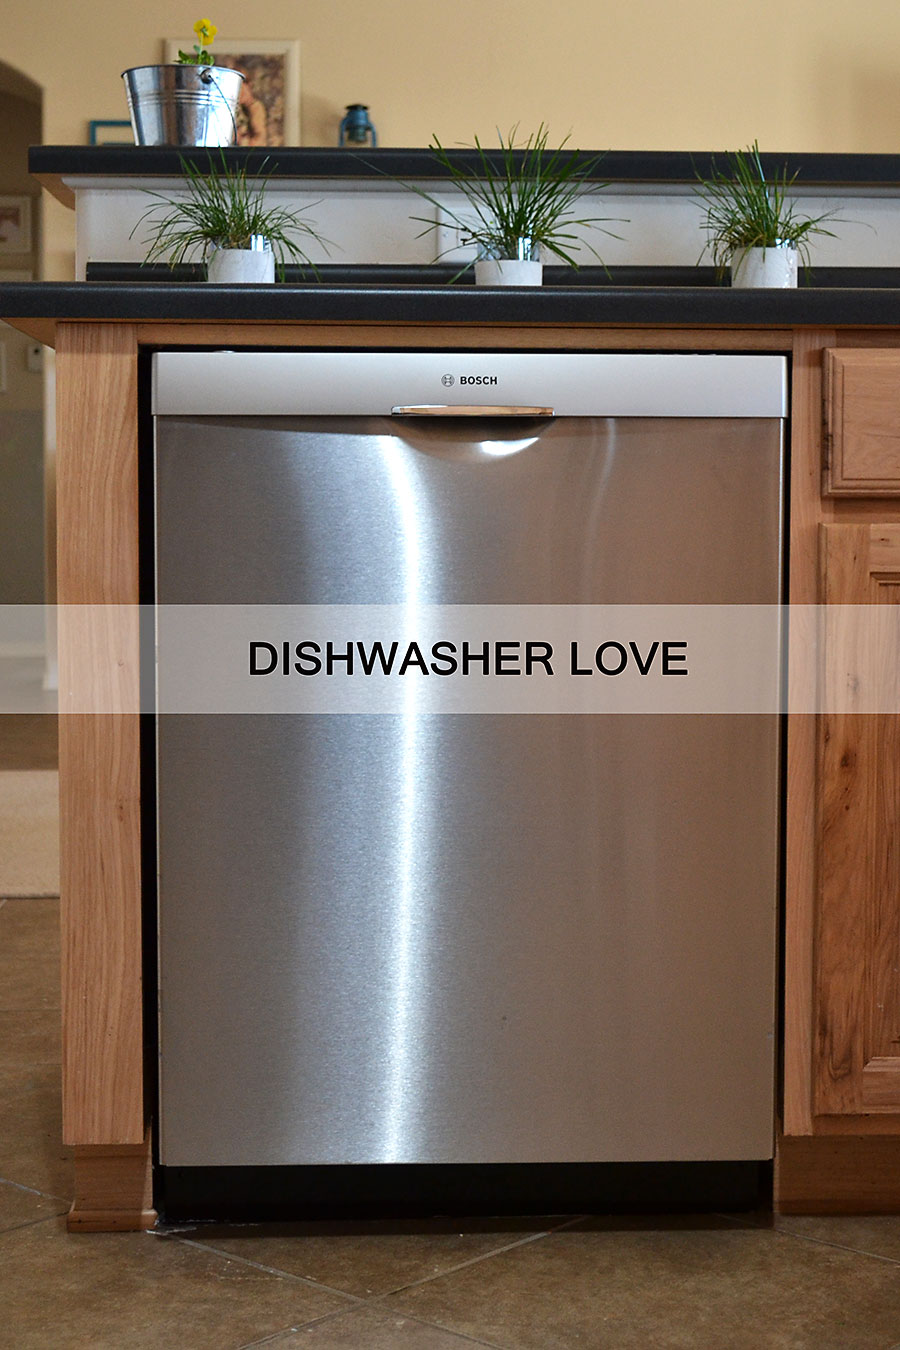 The Bosch Dishwasher Review